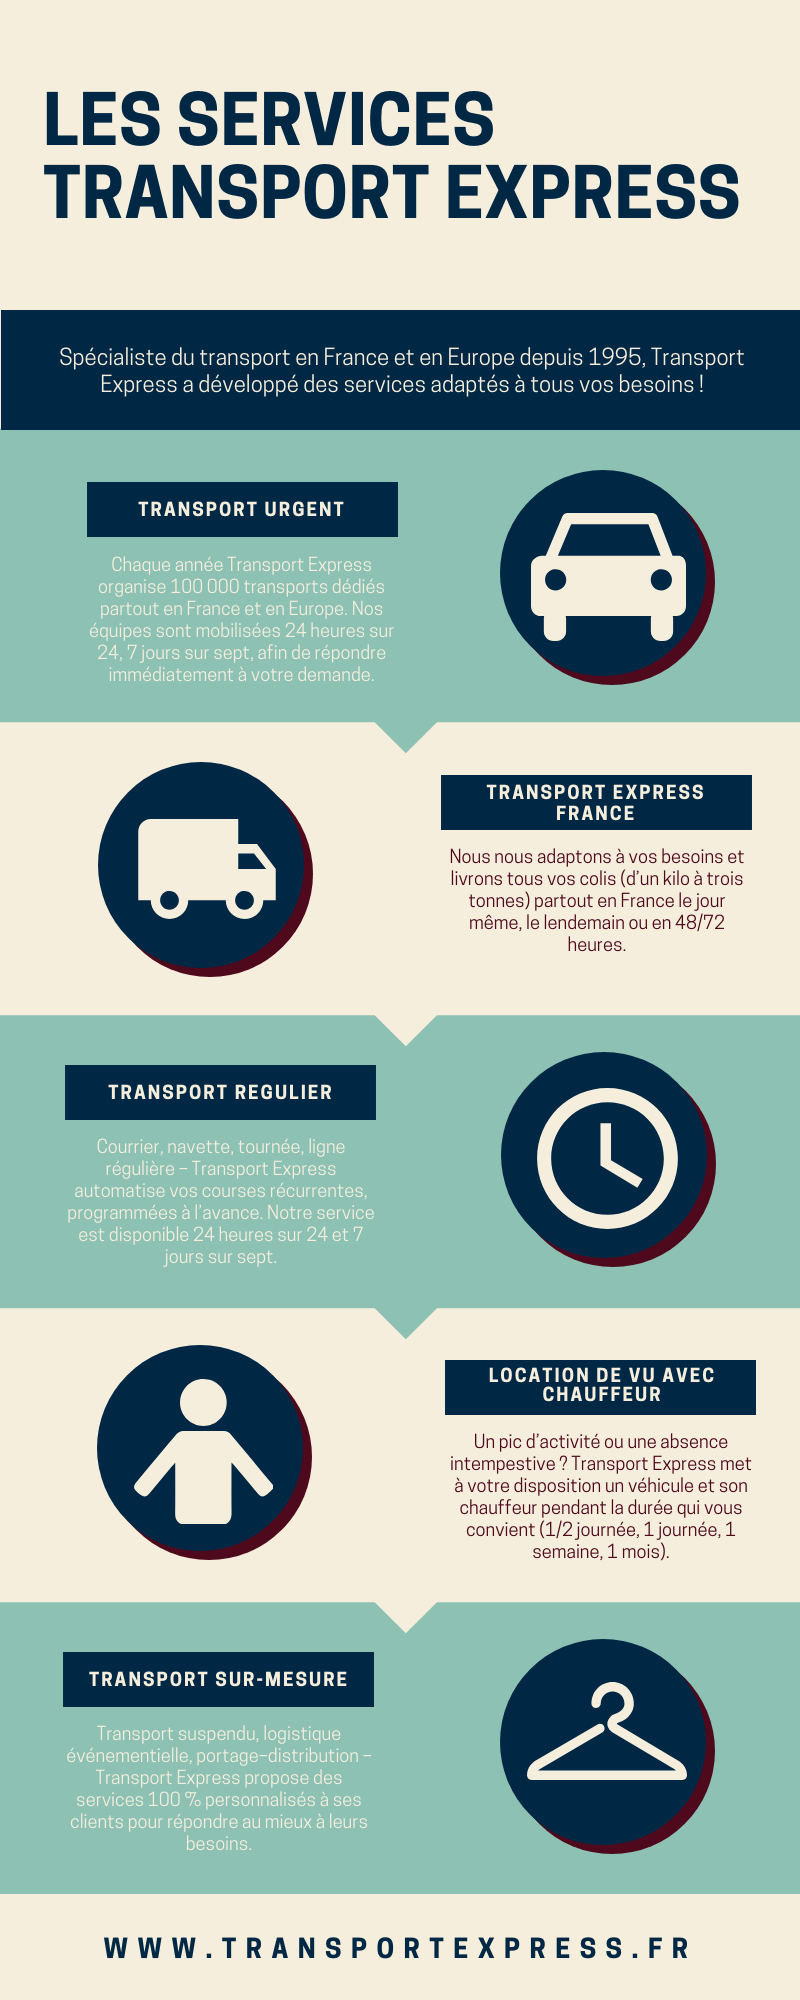 Les services de Transport Express (infographie)